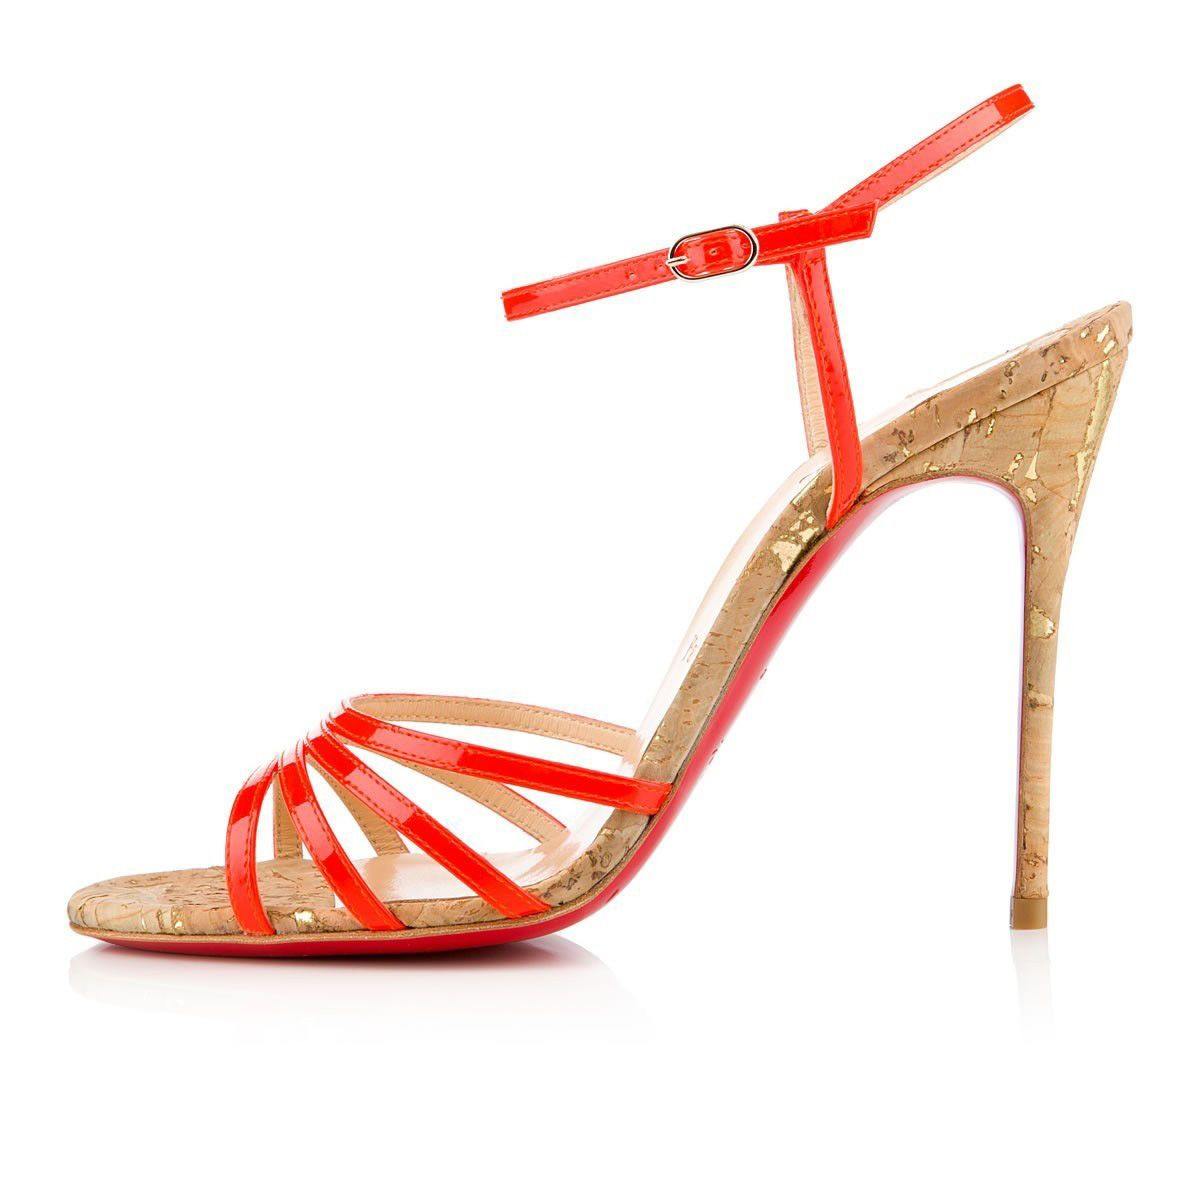 Chaussure Louboutin Pas Cher Sandales Belbride Vernis FluoLiège 100mm  Flame1 #chaussure